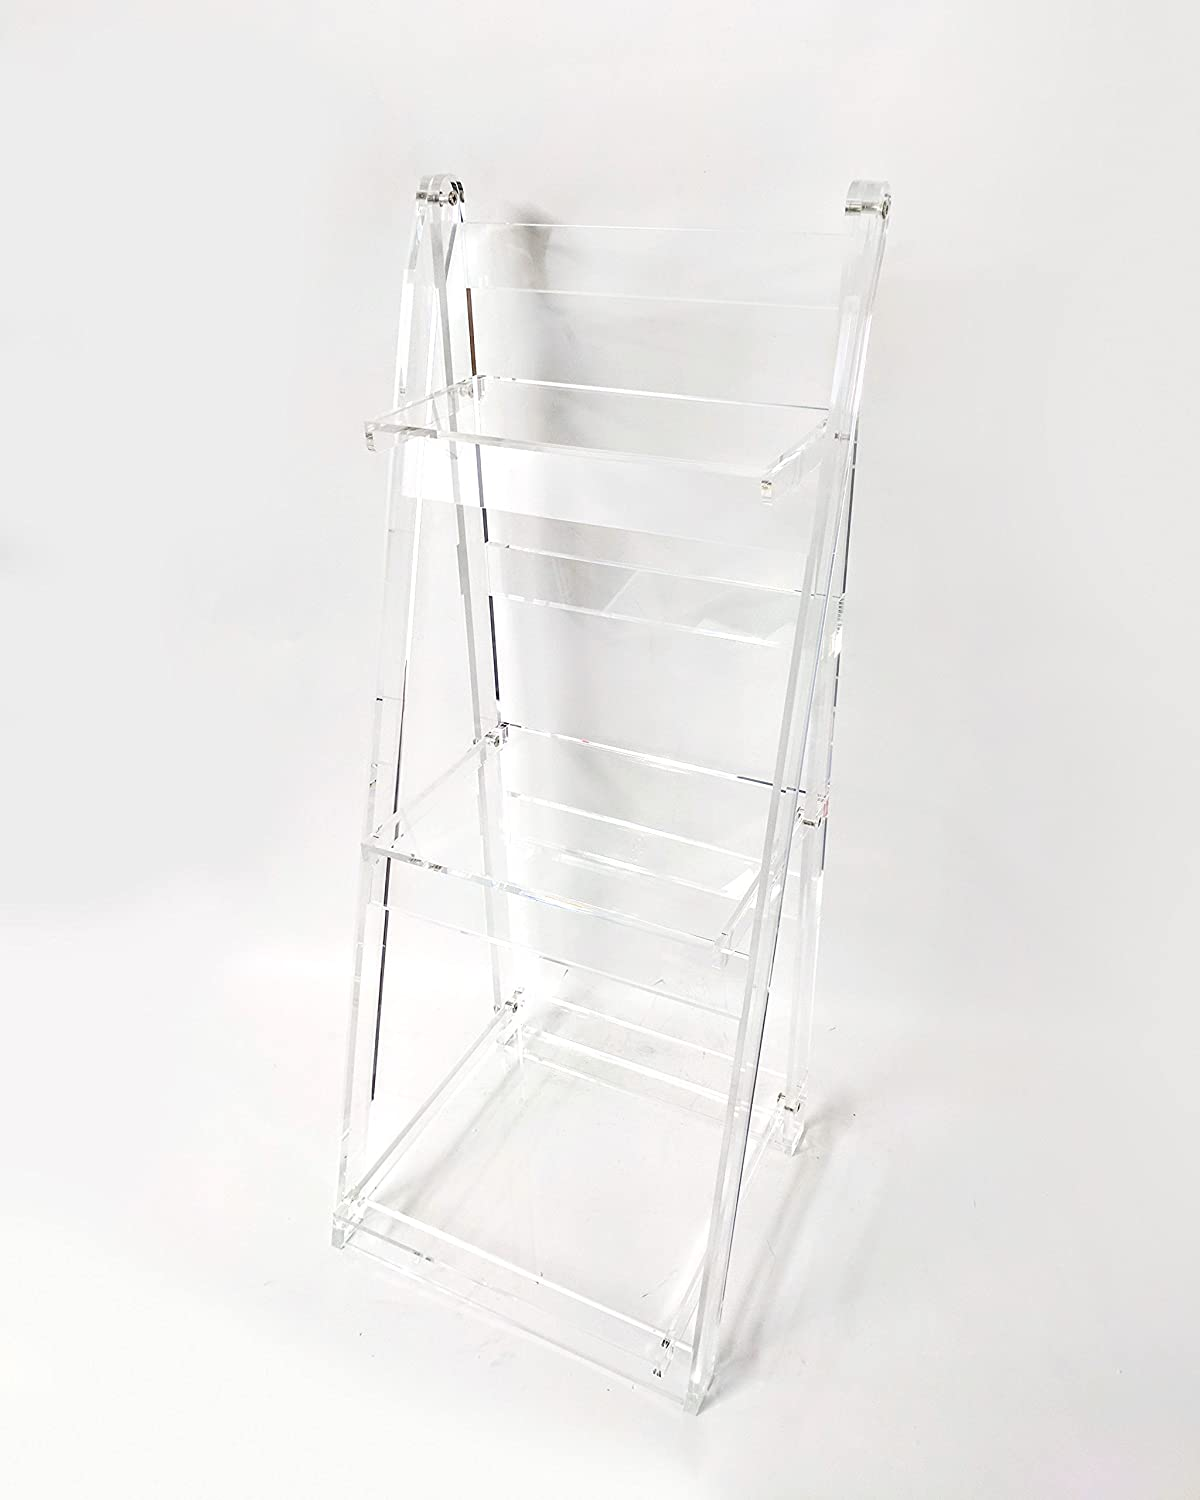 Amazon Designstyles Acrylic 3 Tiered Ladder Shelf Free Standing That Adds Both Visual Appeal And Structural Support To The Design Home Kitchen